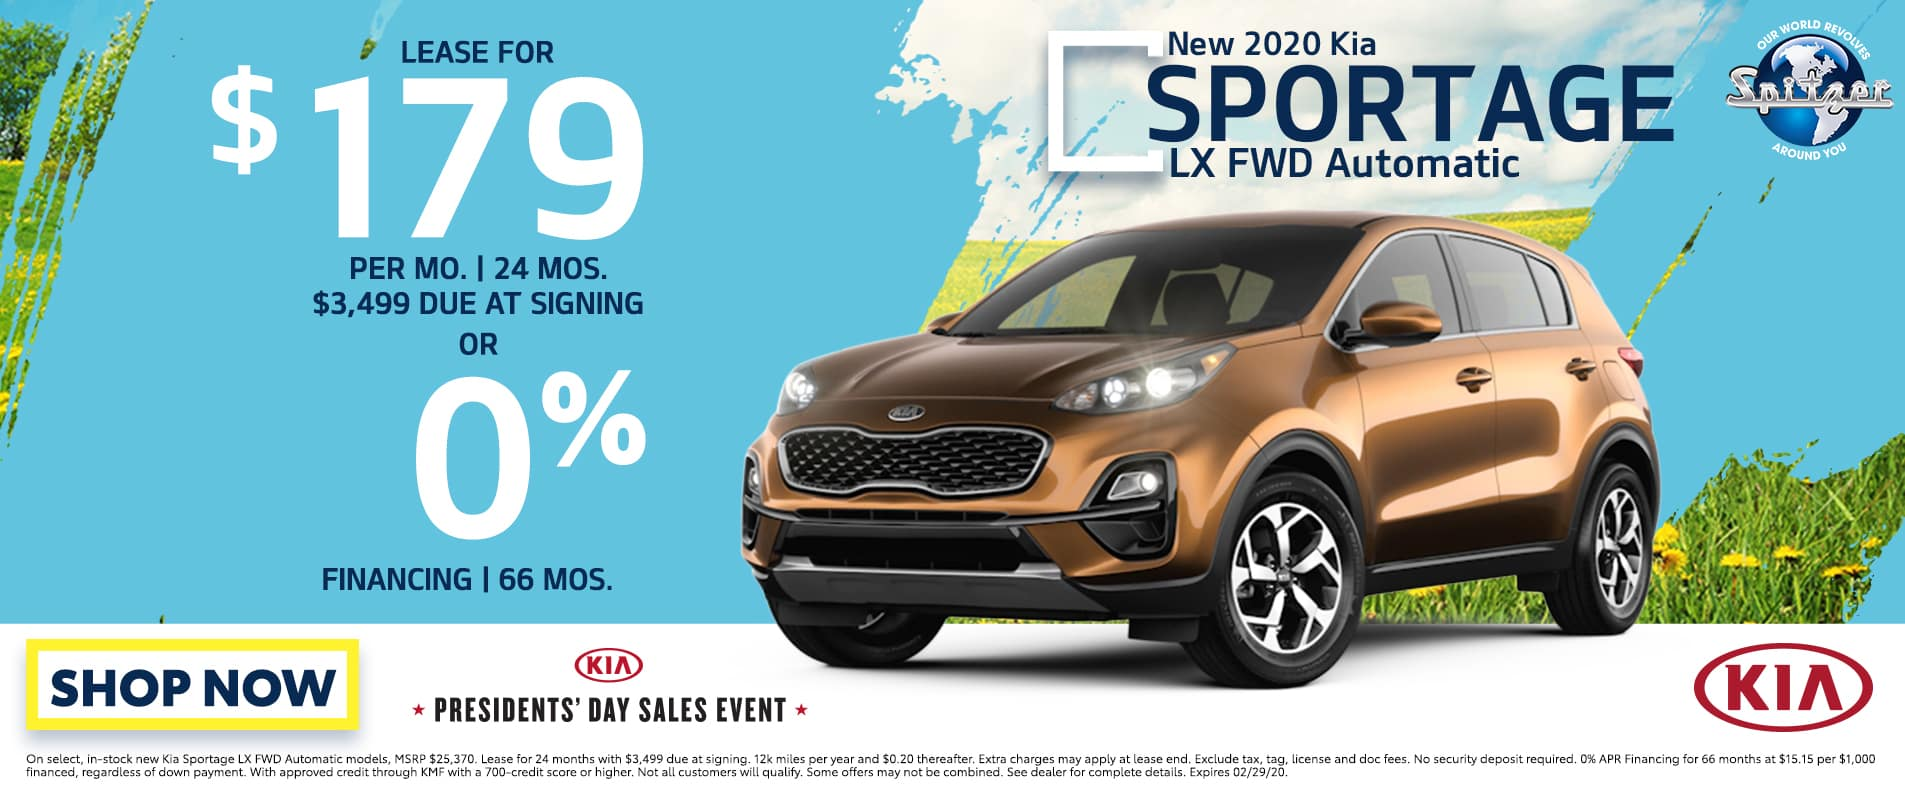 Sportage | LEase for $179